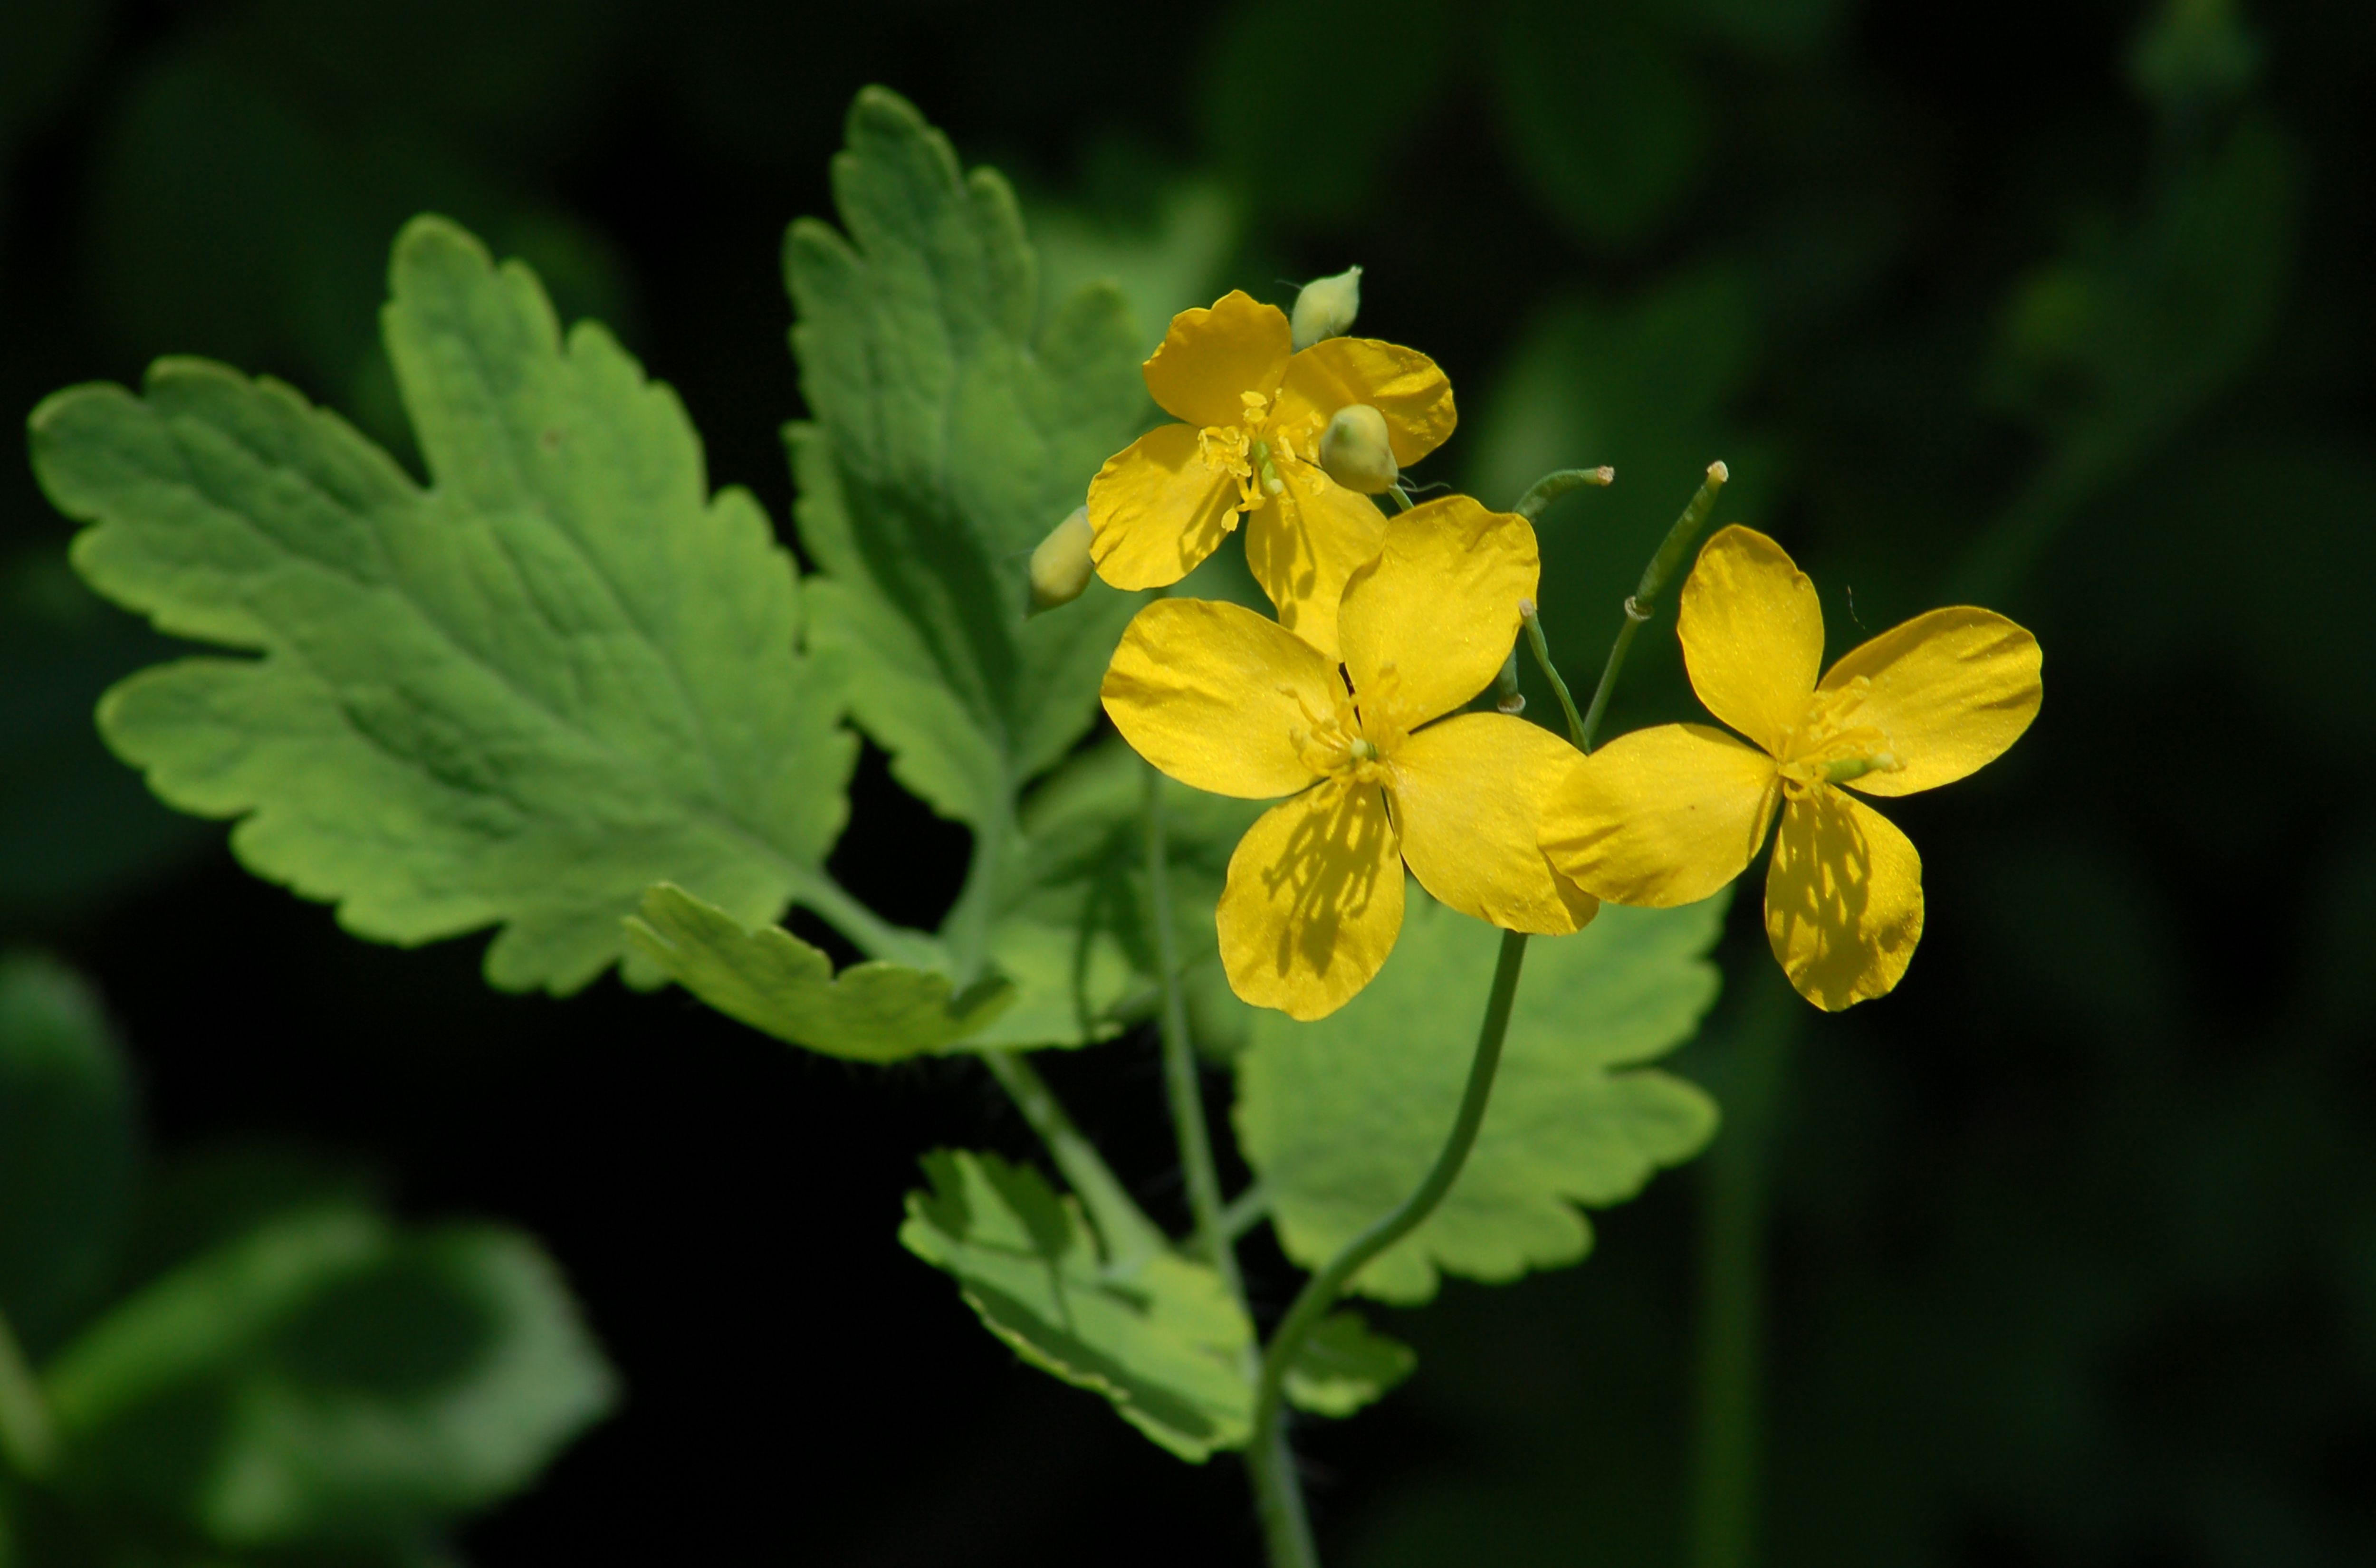 Greater celandine plant with yellow blooms